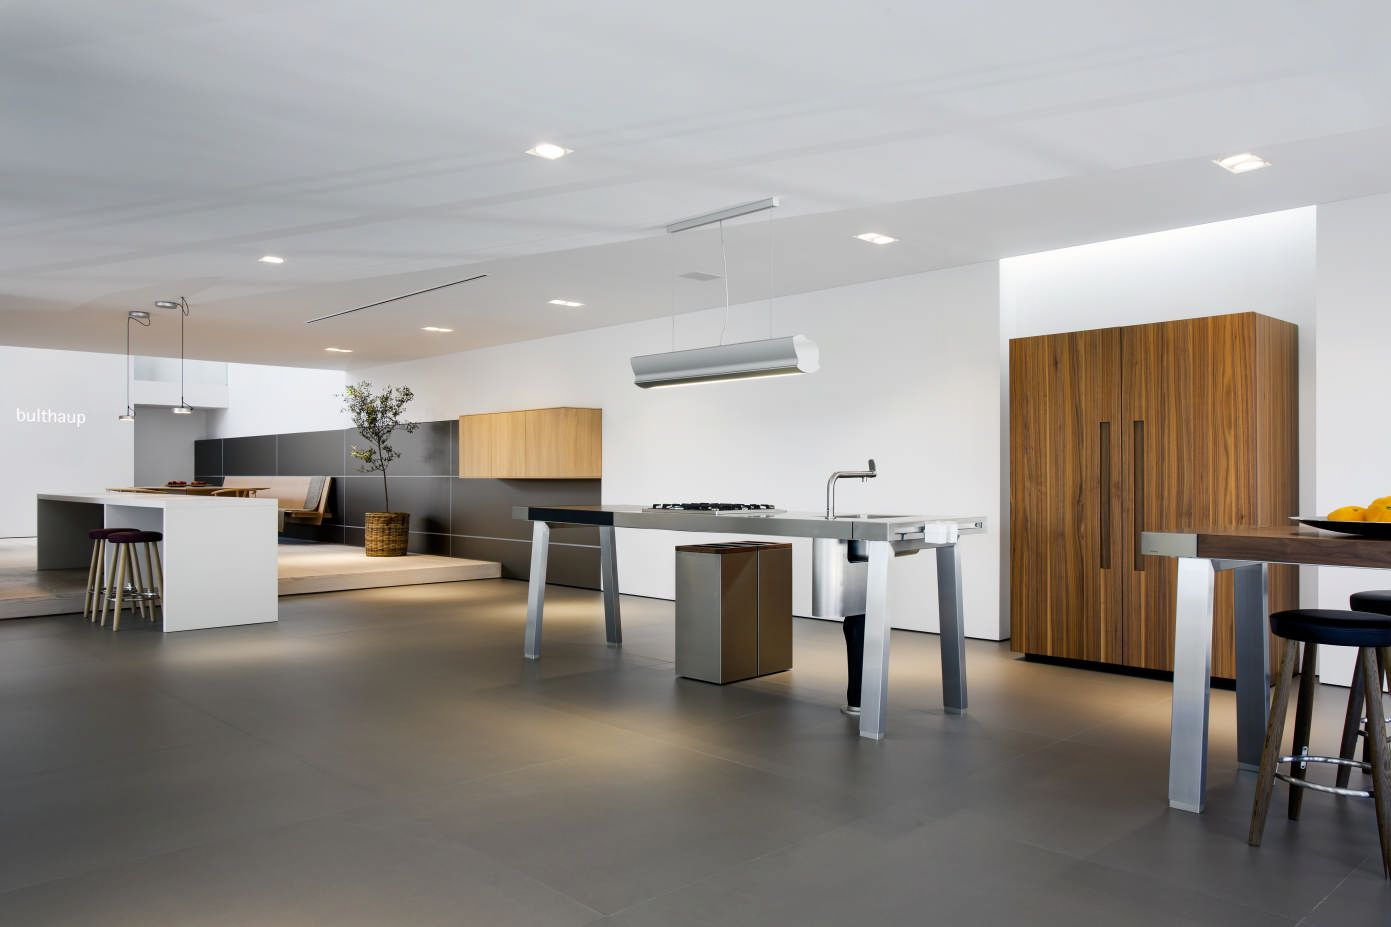 bulthaup b2 kitchen workshop at the new showroom in Johannesburg ...